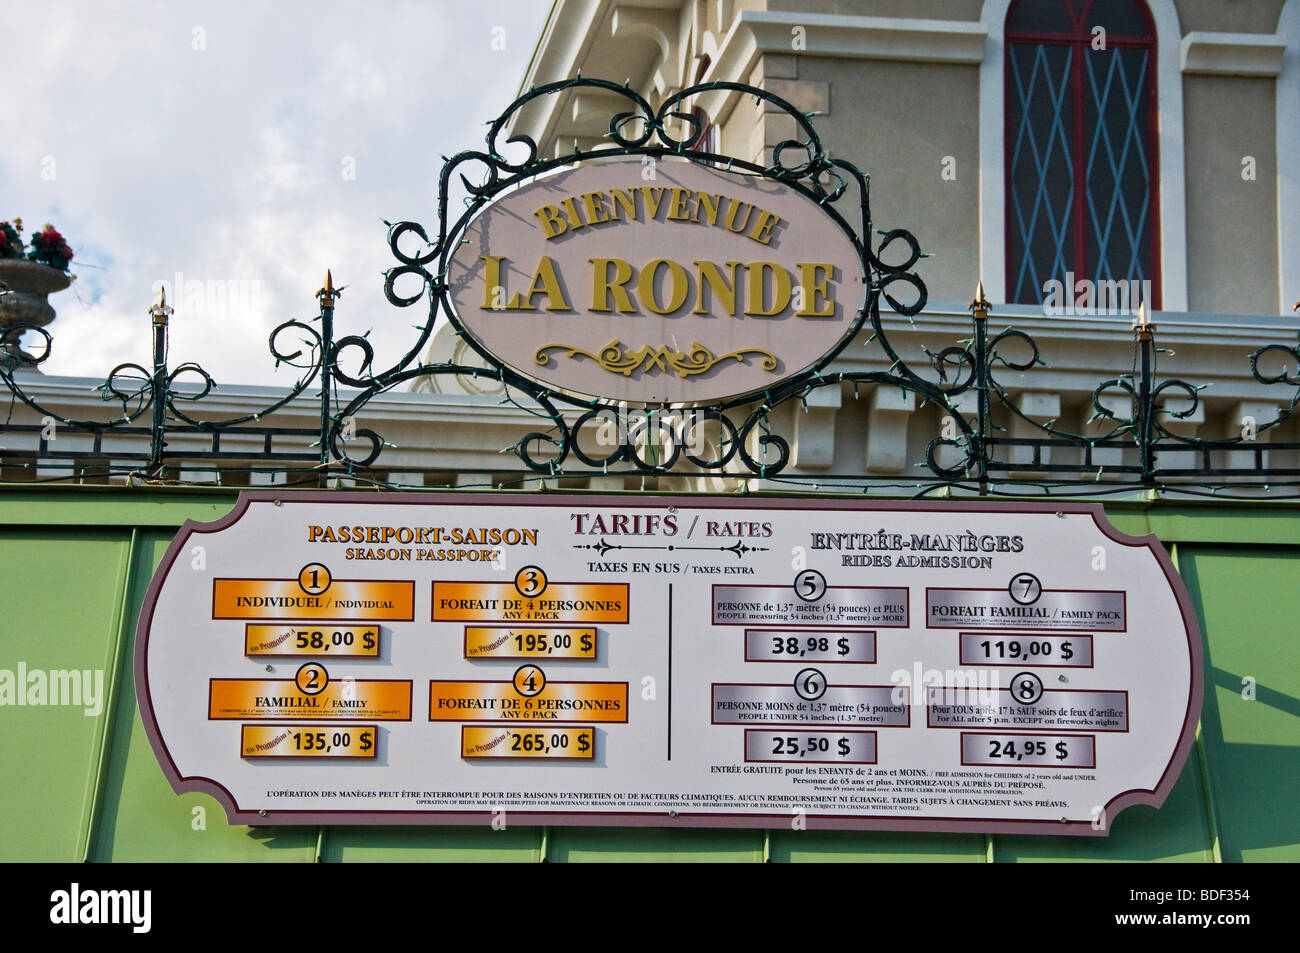 Admissions in La Ronde Entertainment Park Ile Sainte Helene Montreal Canada - Stock Image